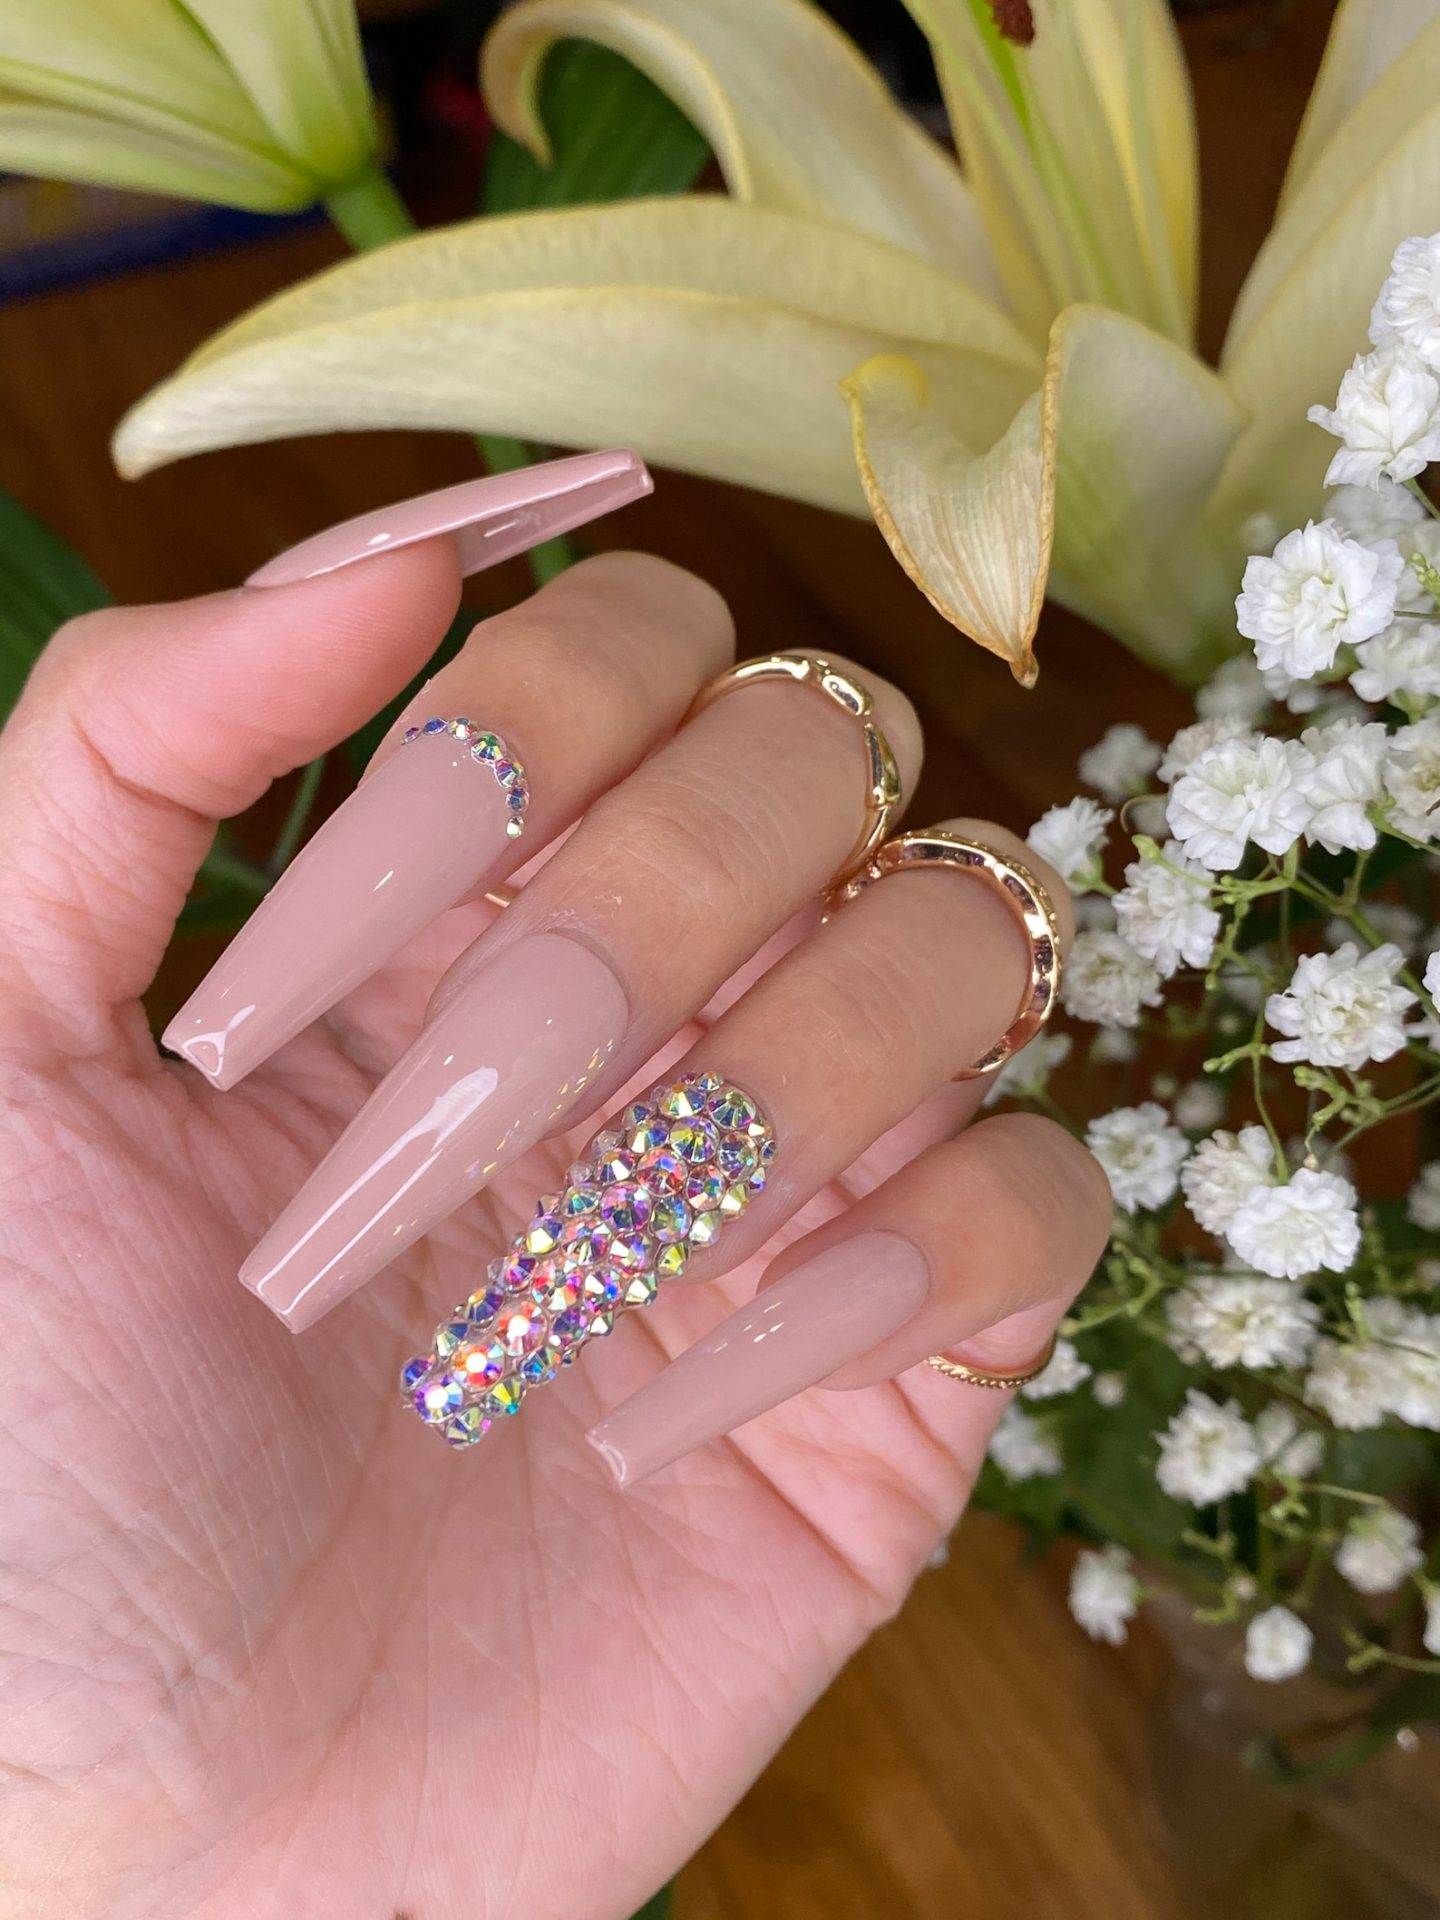 Long nude coffin nails with rhinestones